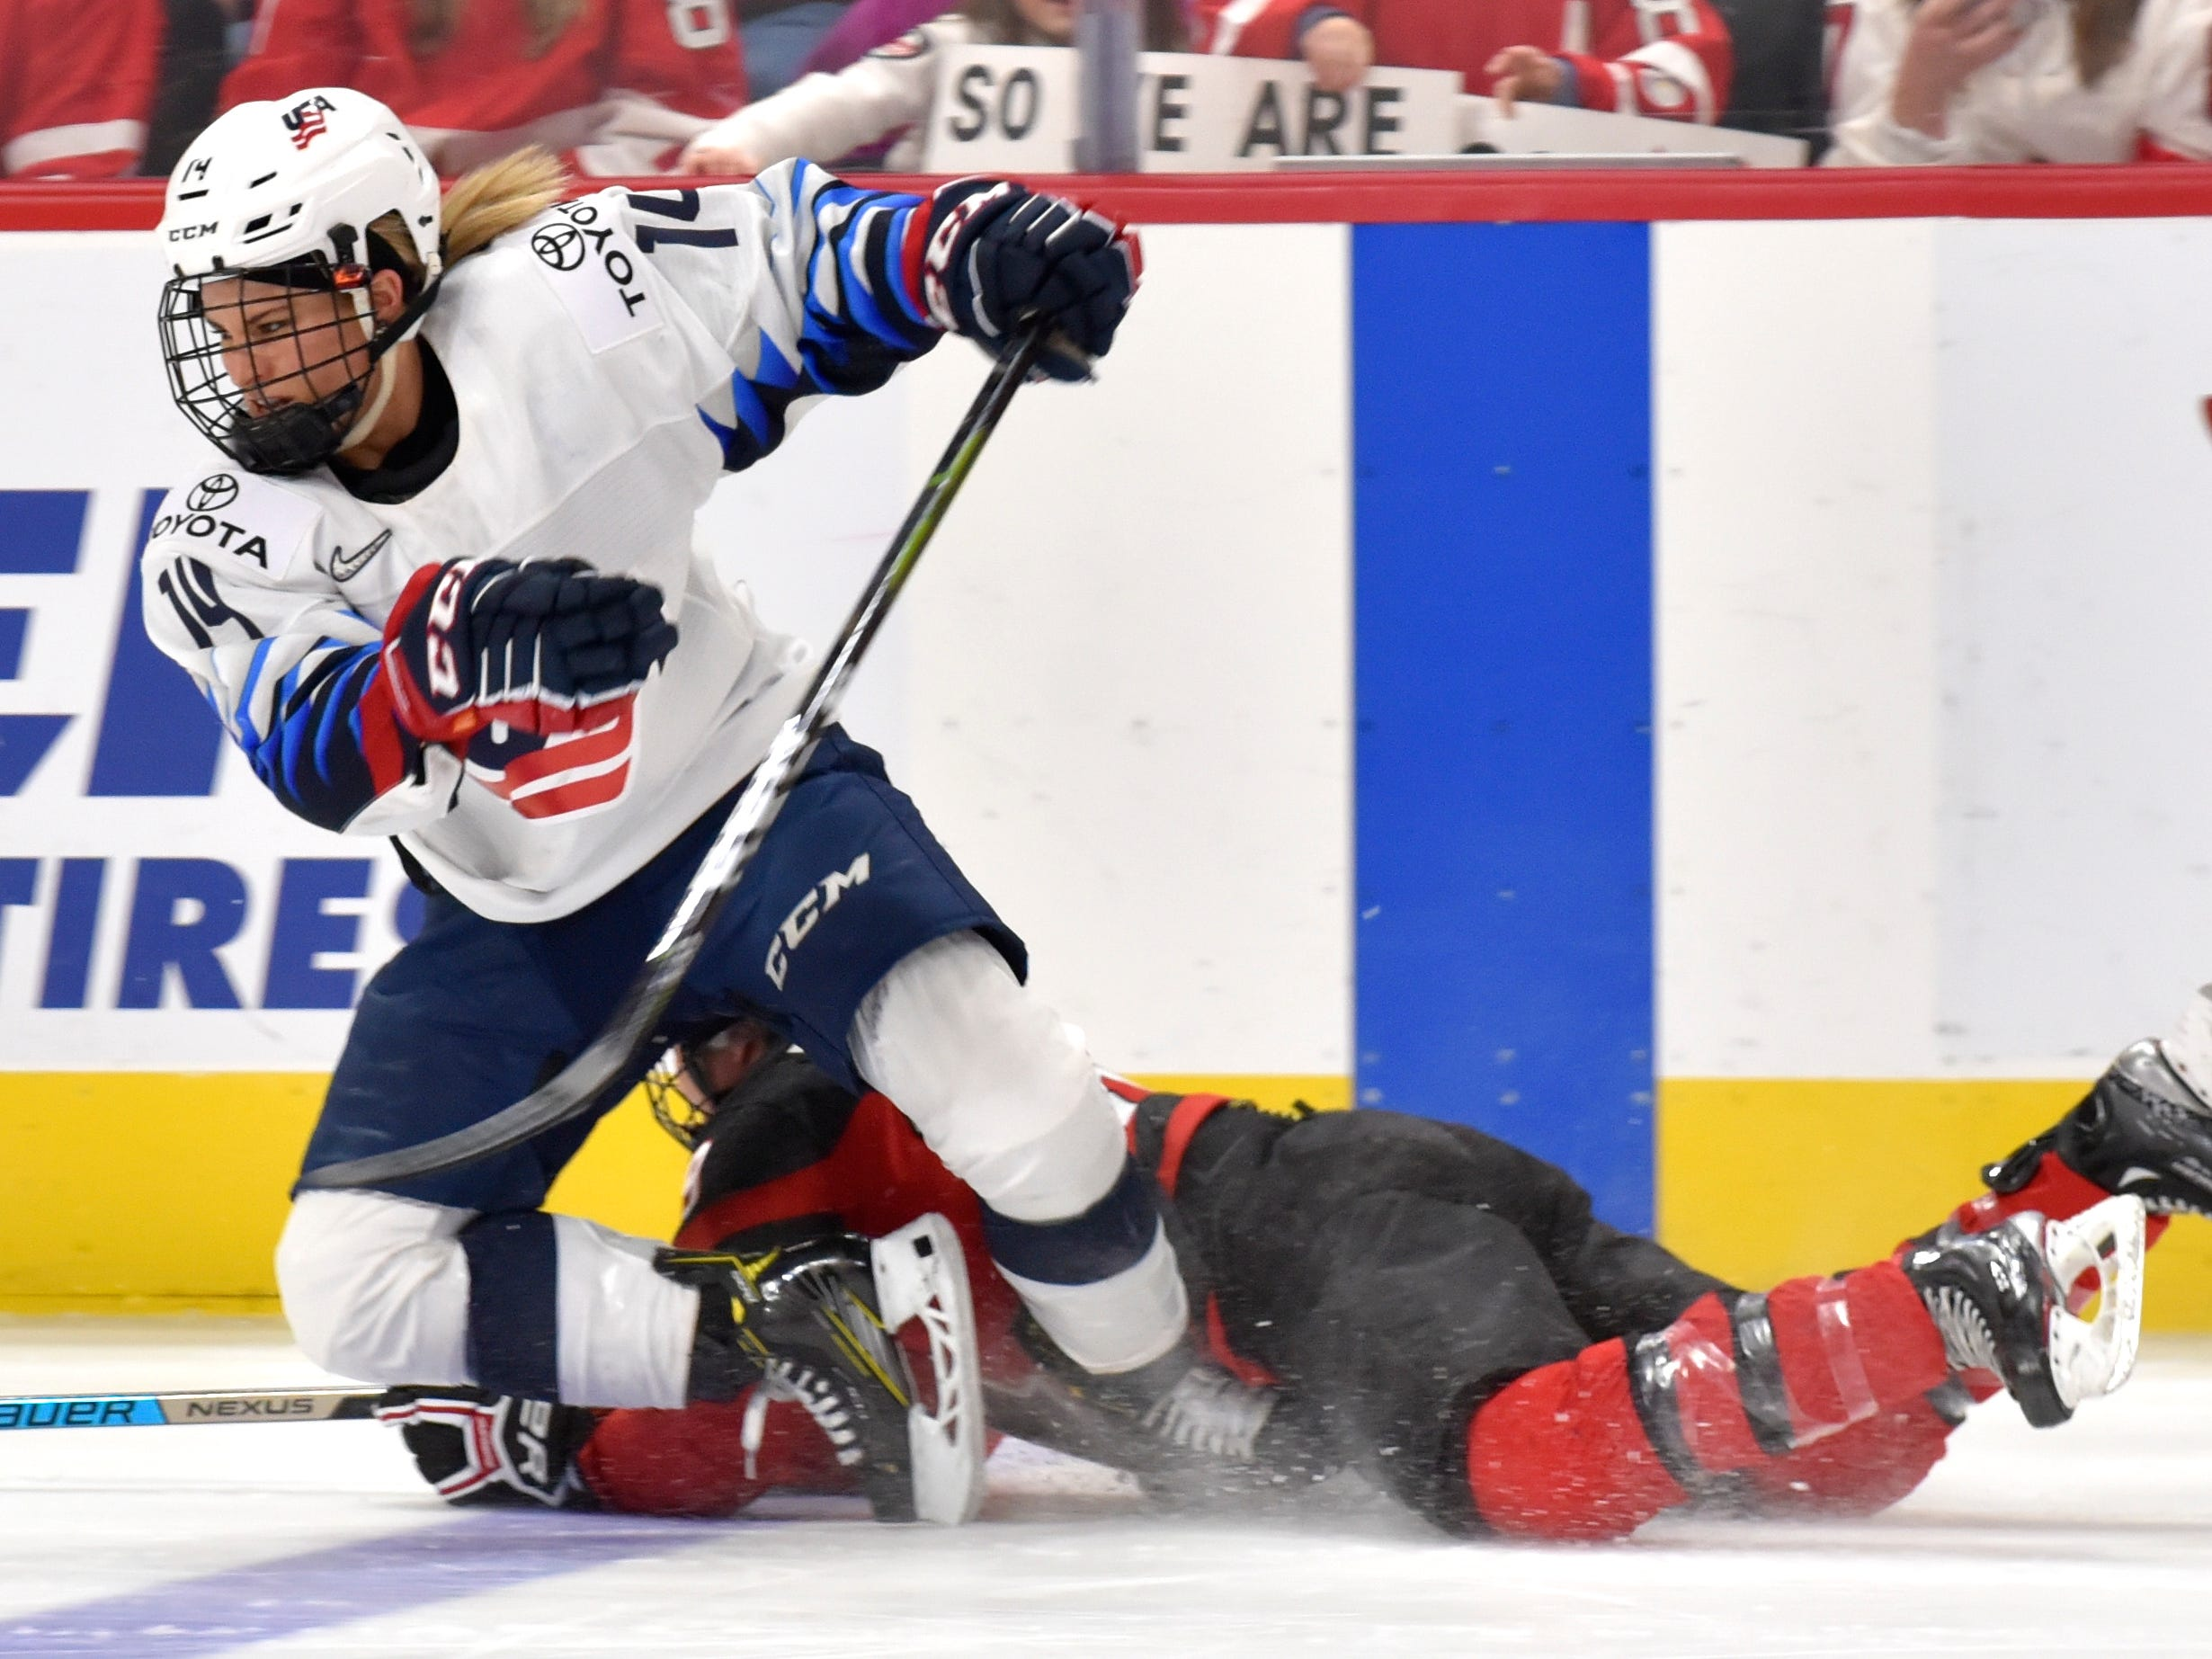 U.S's Brianna Decker(14) and Ann-Sophie Bettez(39) tangle for the puck in the third period.